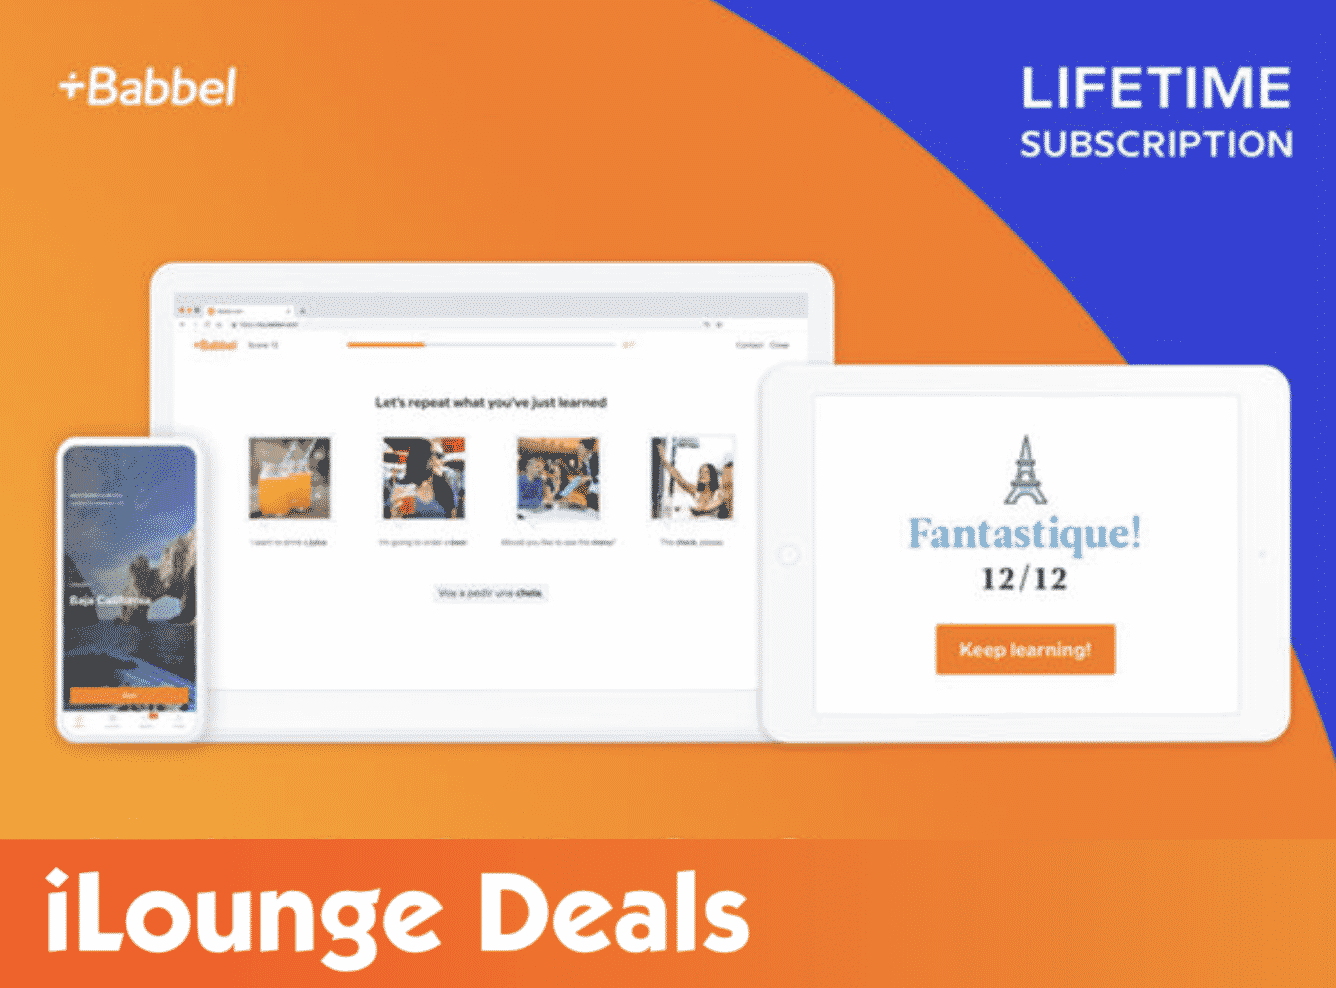 Babbel Lifetime Subscriptions